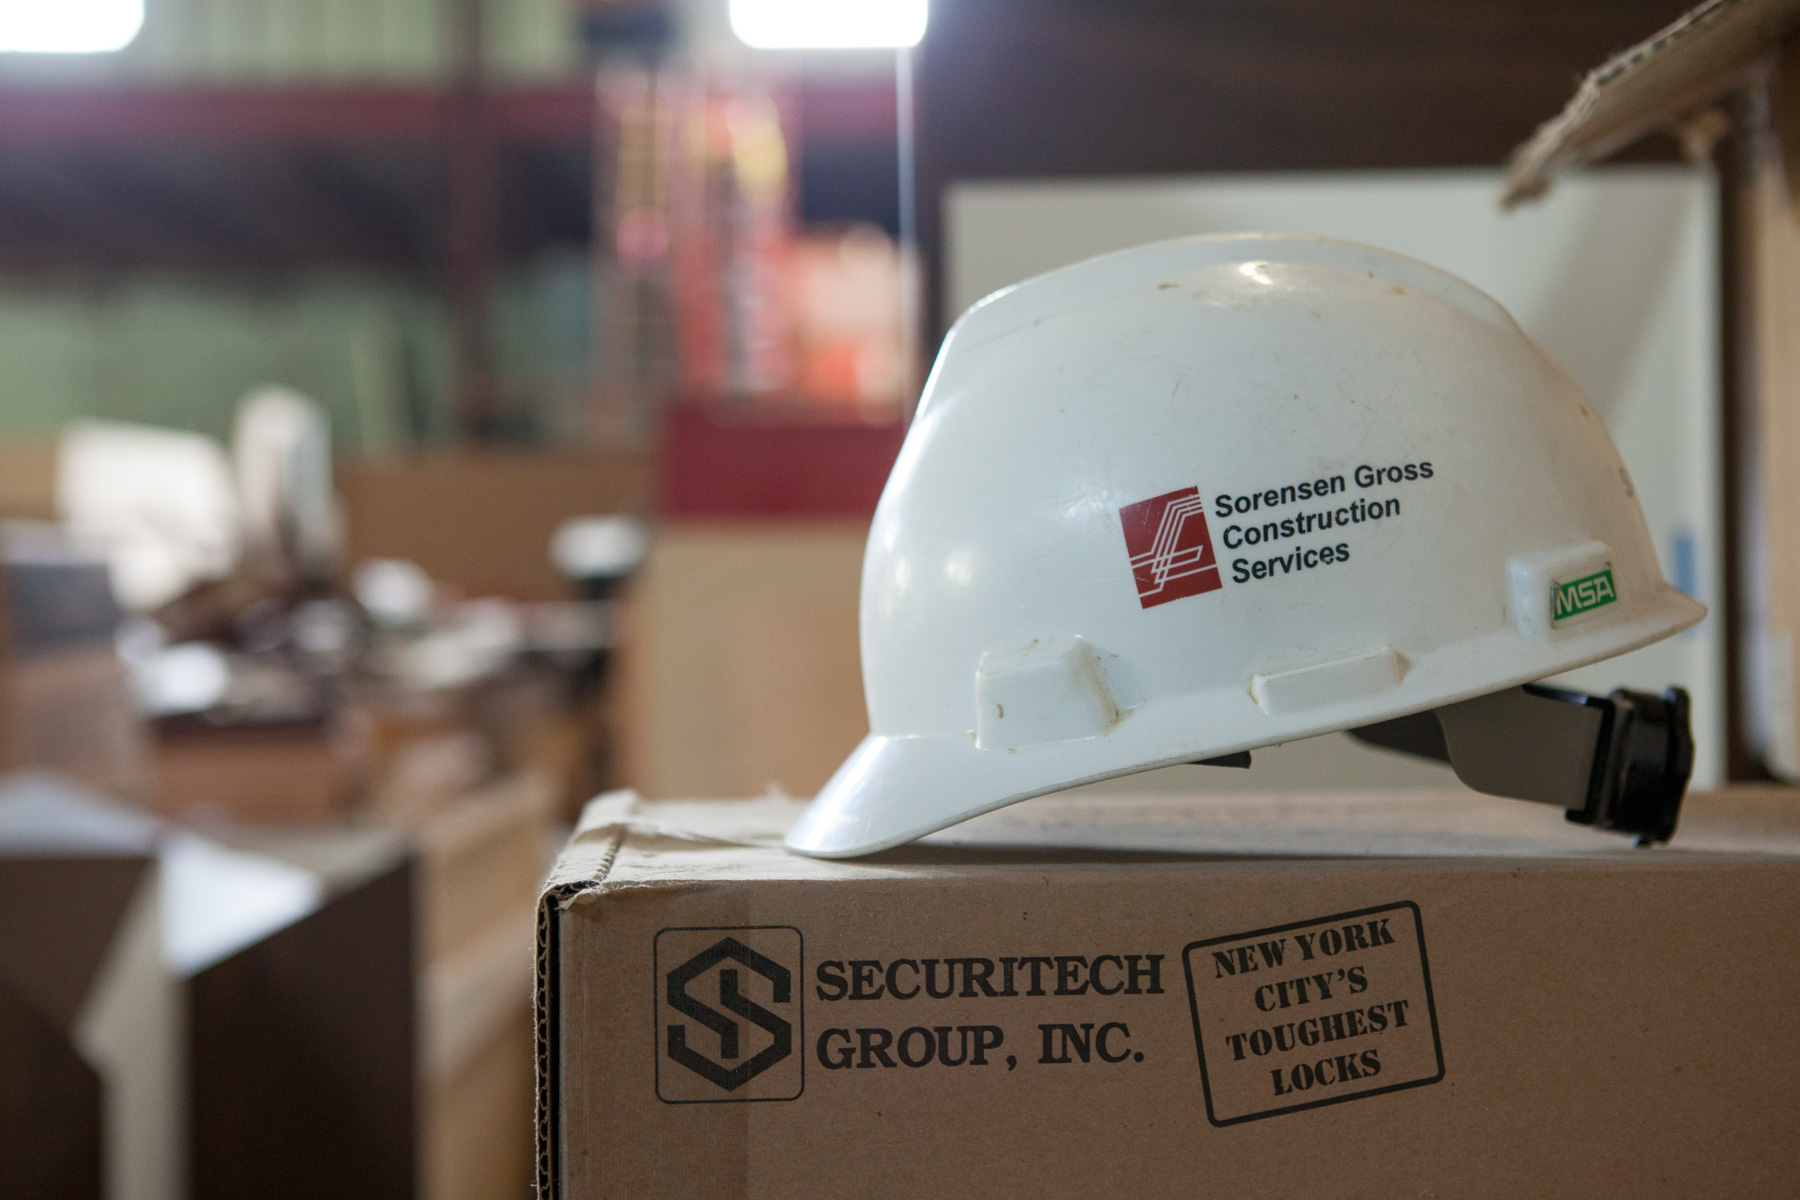 Sorensen Gross Construction Services-9616